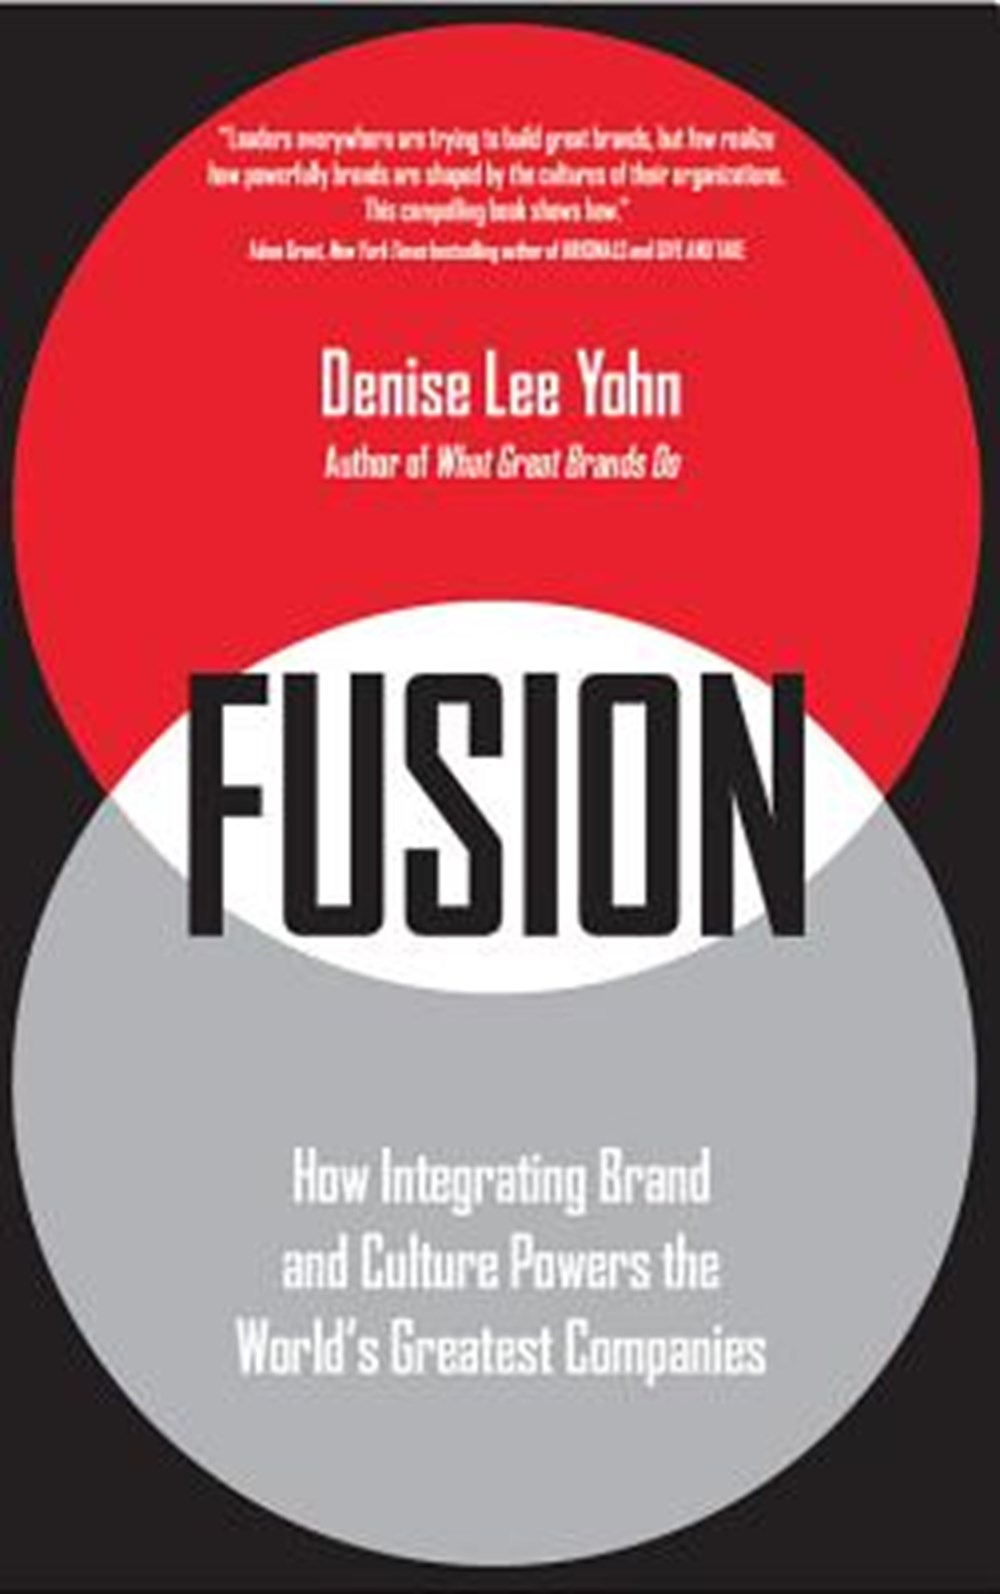 Fusion How Integrating Brand and Culture Powers the World's Greatest Companies